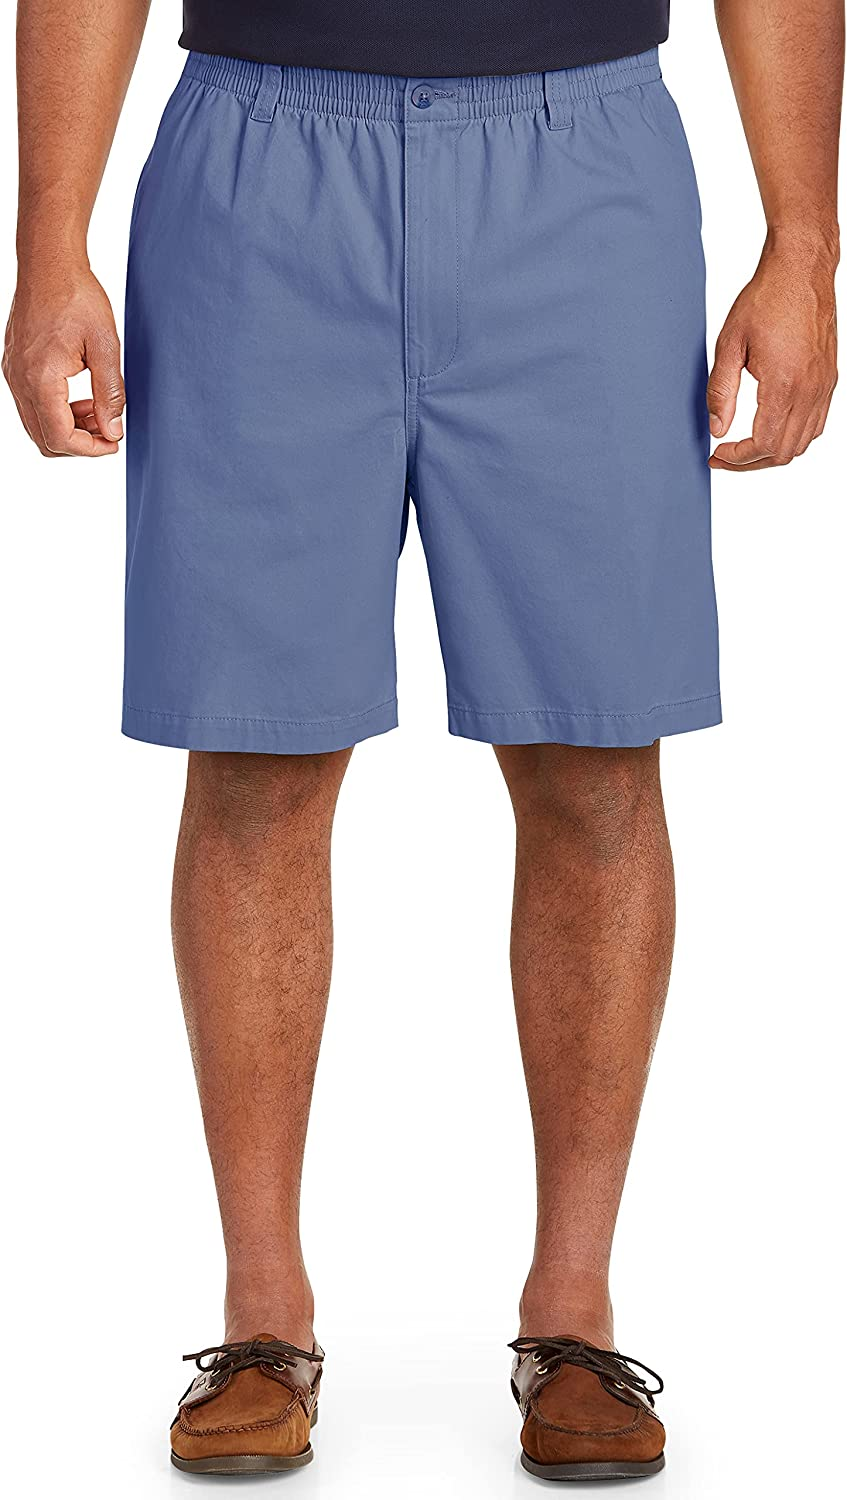 Harbor Bay by DXL Big Elastic-Waist online shopping Brand Cheap Sale Venue and Tall Shorts